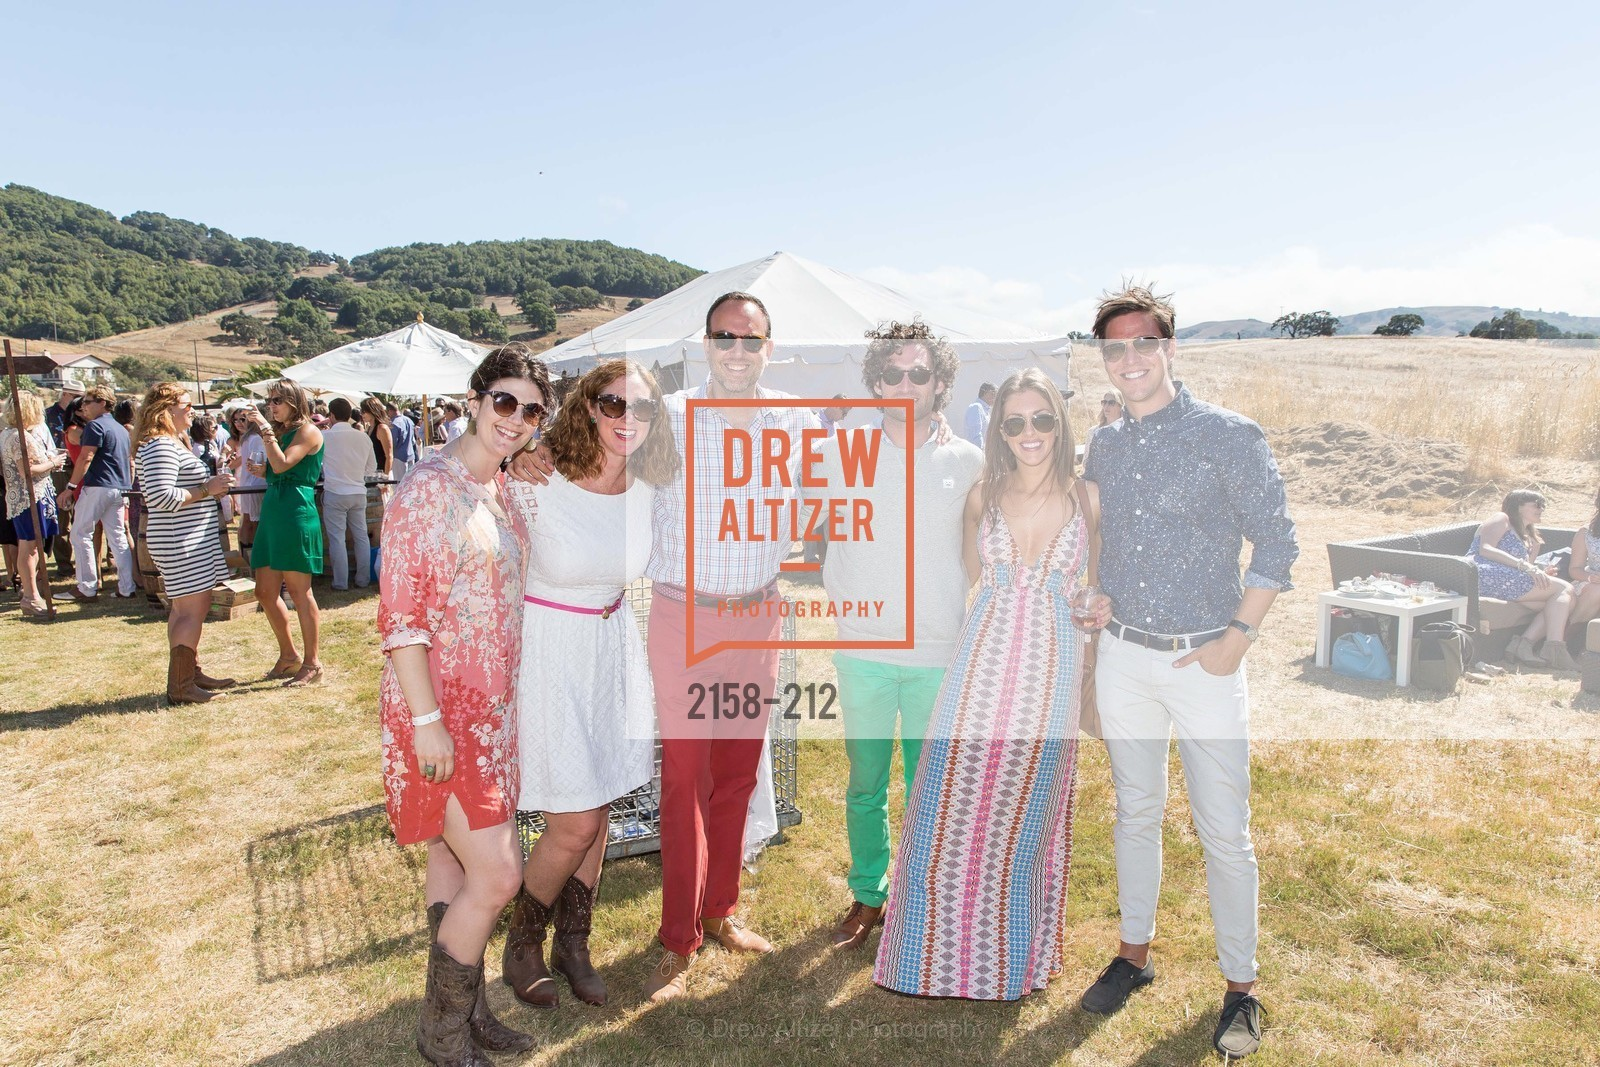 Jamie Mauldin, Laura Sullivan, Justin Fichelson, Katie Secrest, Russ Warren, Stick & Ball Oyster Cup Polo Tournament, Cerro Pampa Polo Club, July 25th, 2015,Drew Altizer, Drew Altizer Photography, full-service agency, private events, San Francisco photographer, photographer california